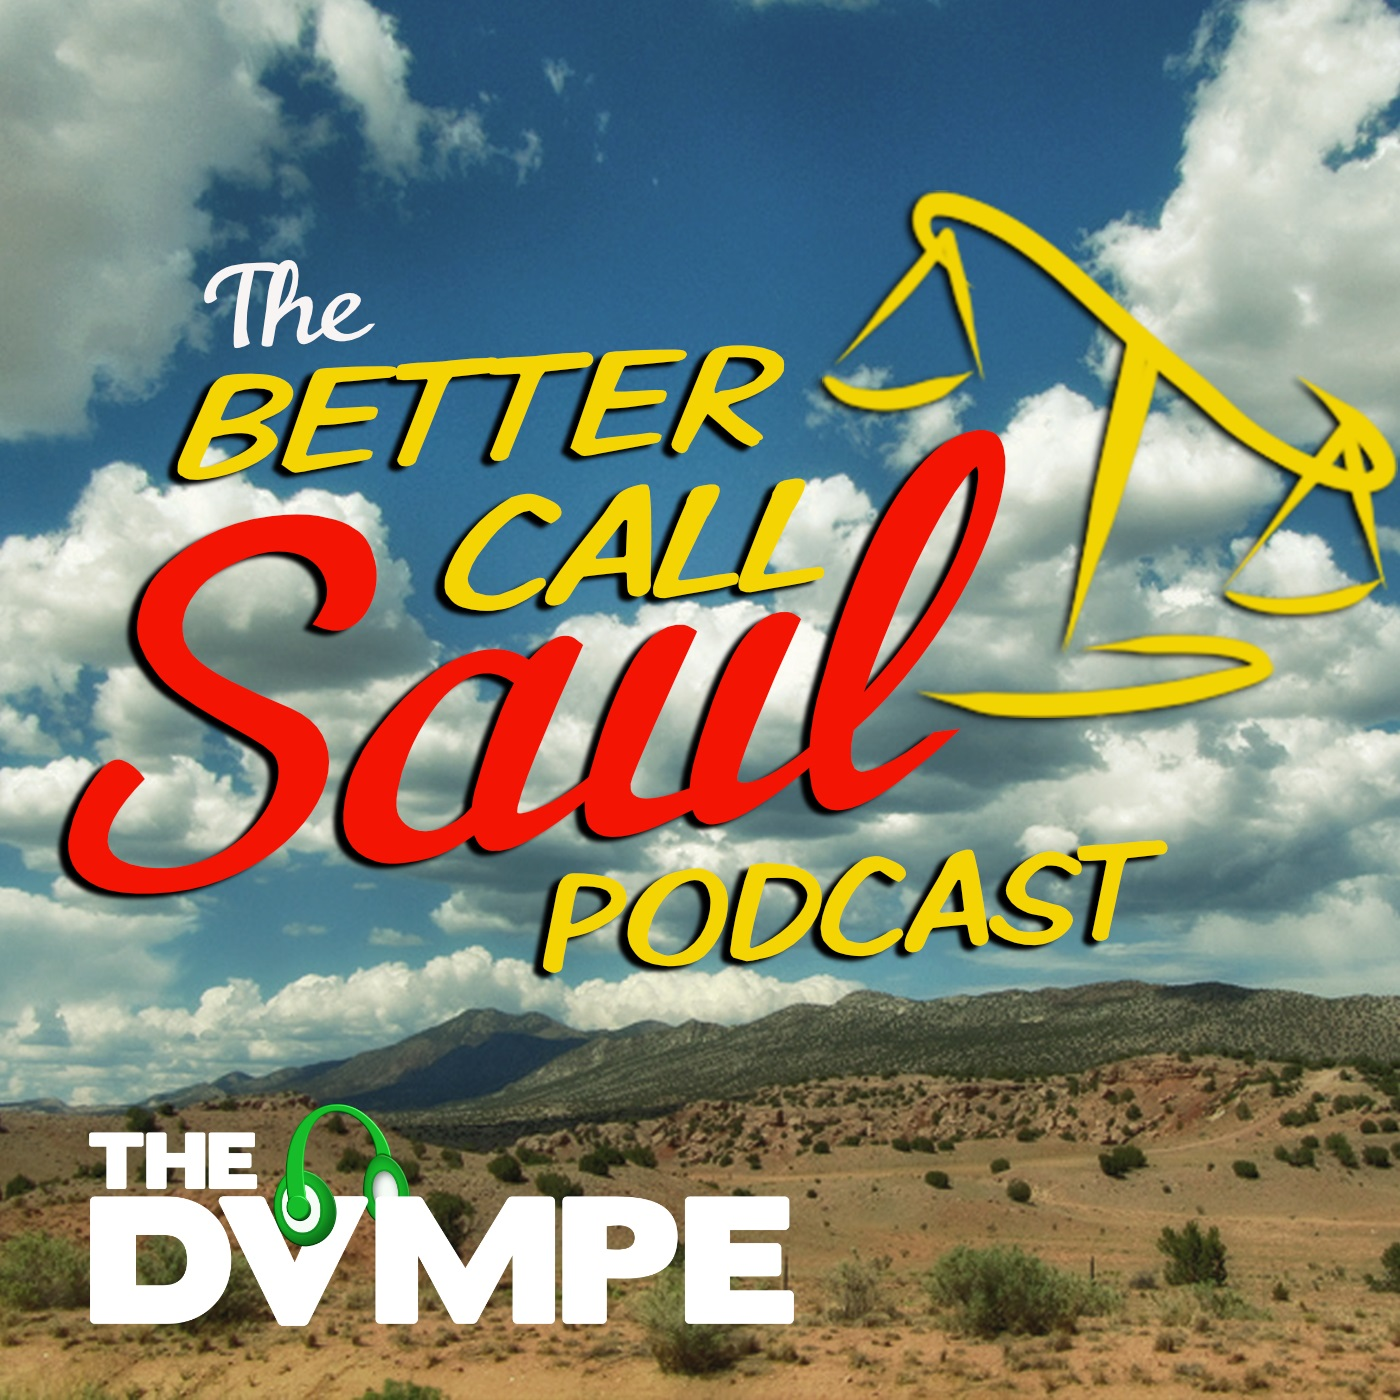 The Better Call Saul Podcast